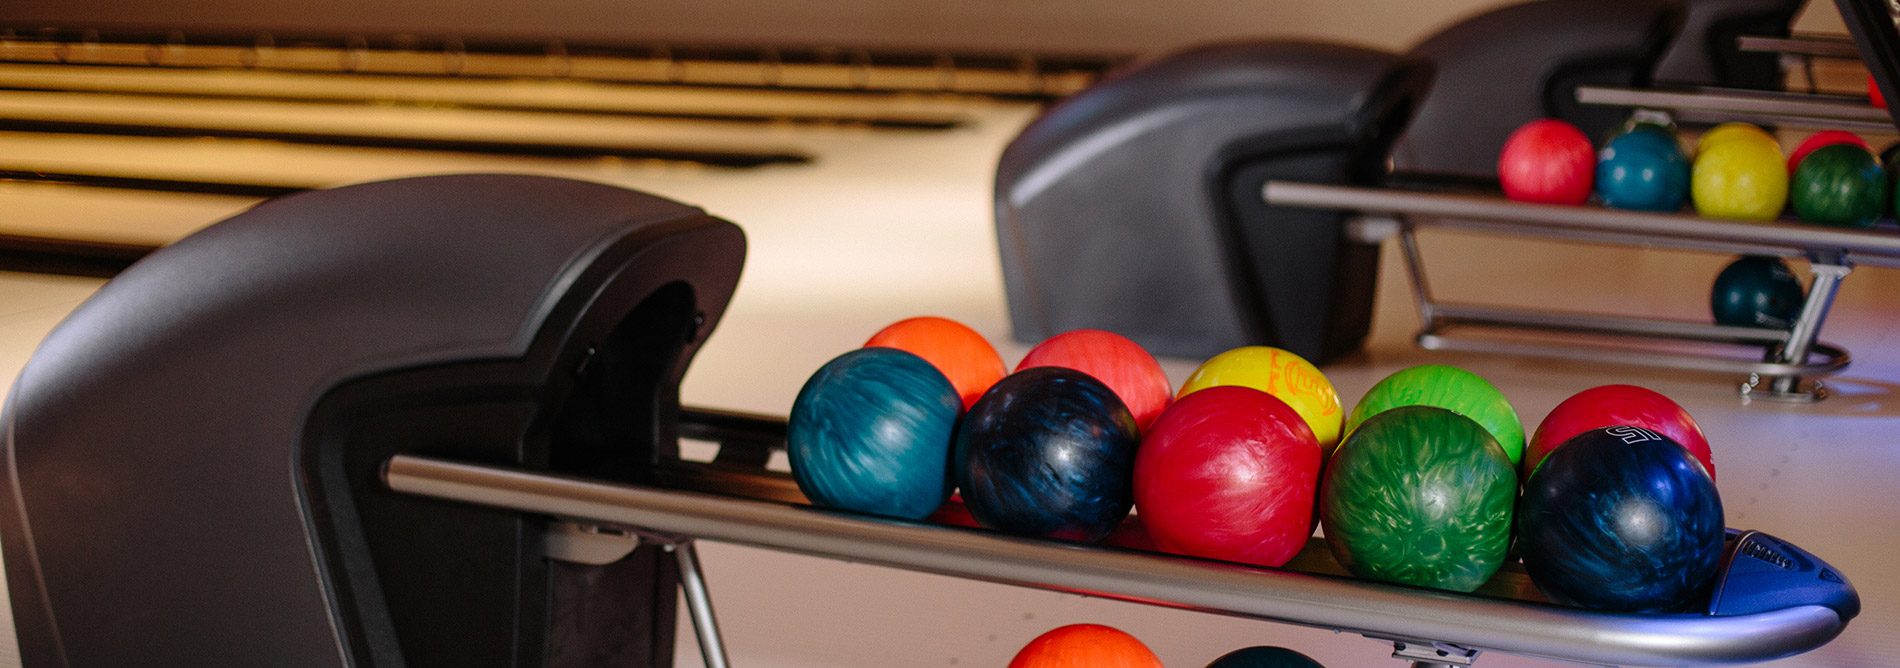 Bowling-QubicaAMF-furniture-harmony-ball-return-banner.jpg